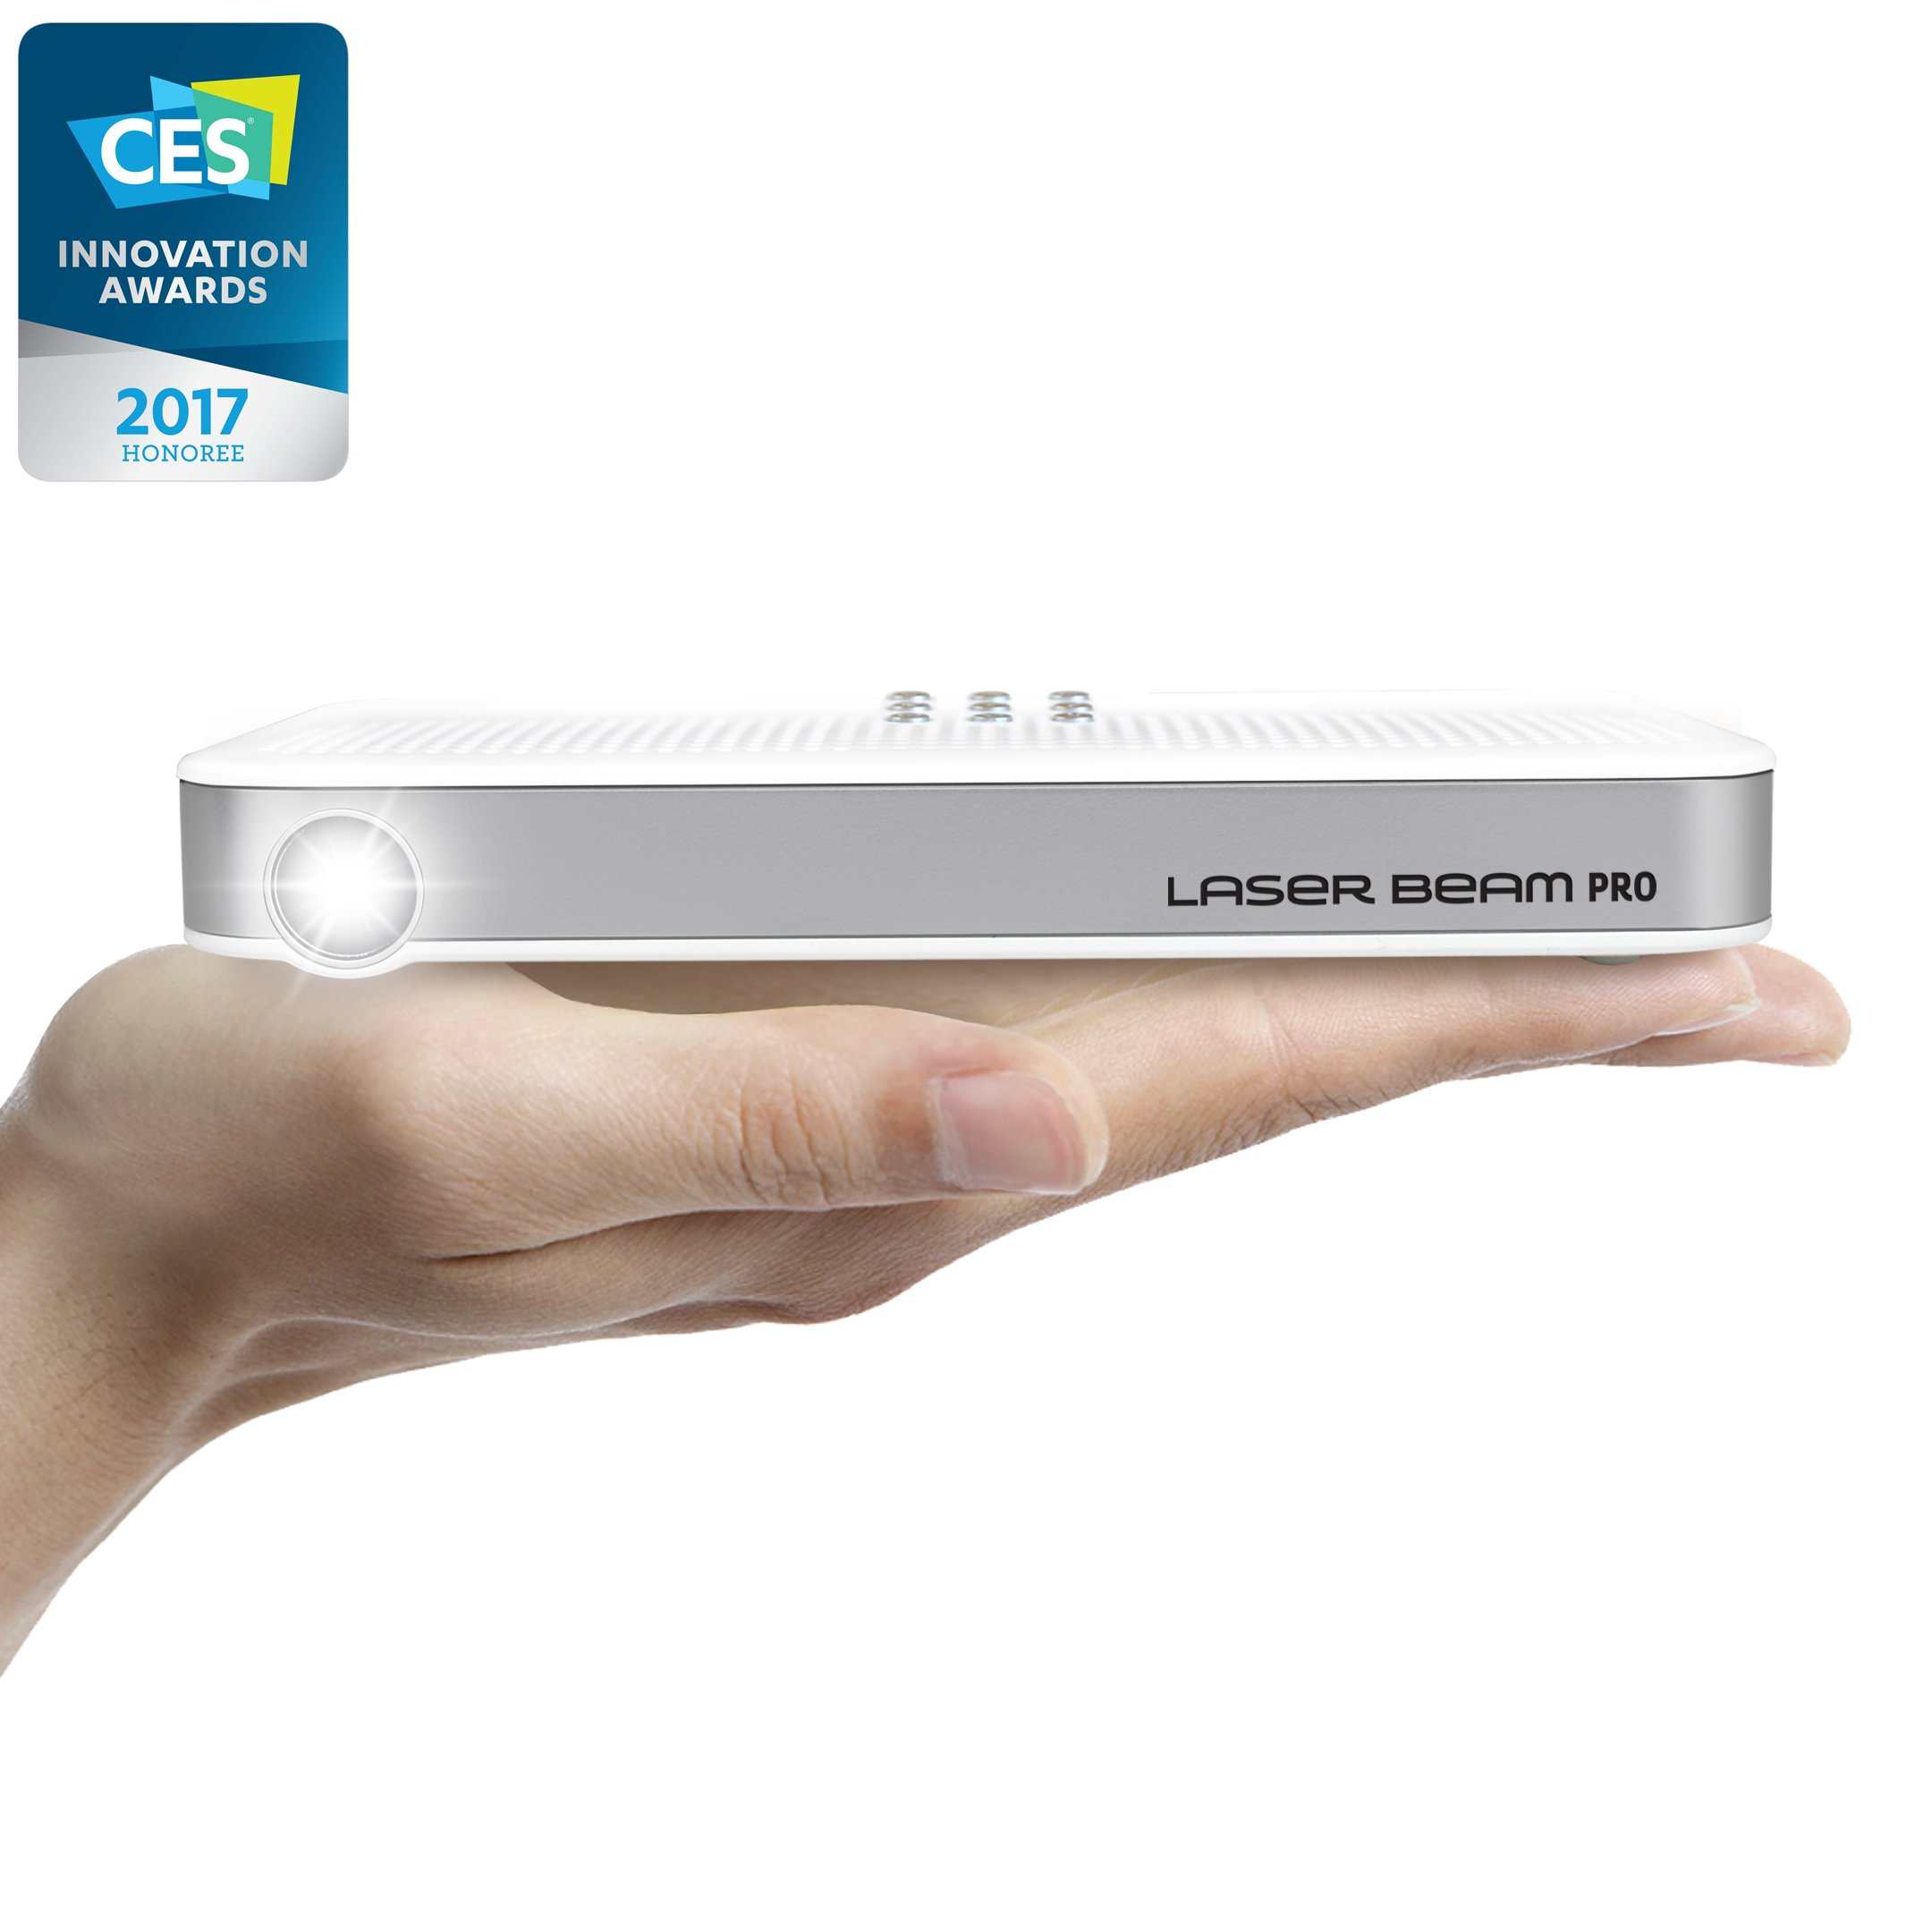 Laser Beam Pro, 2017 CES Awarded, Focus Free, FDA Class1 Laser, Less than 1mW, 200 Lumens, 4K input 768P HD output, Up to 150'' Screen, Wi-Fi, Bluetooth, USB, microSDslot, HDMI, OS equipped Projector